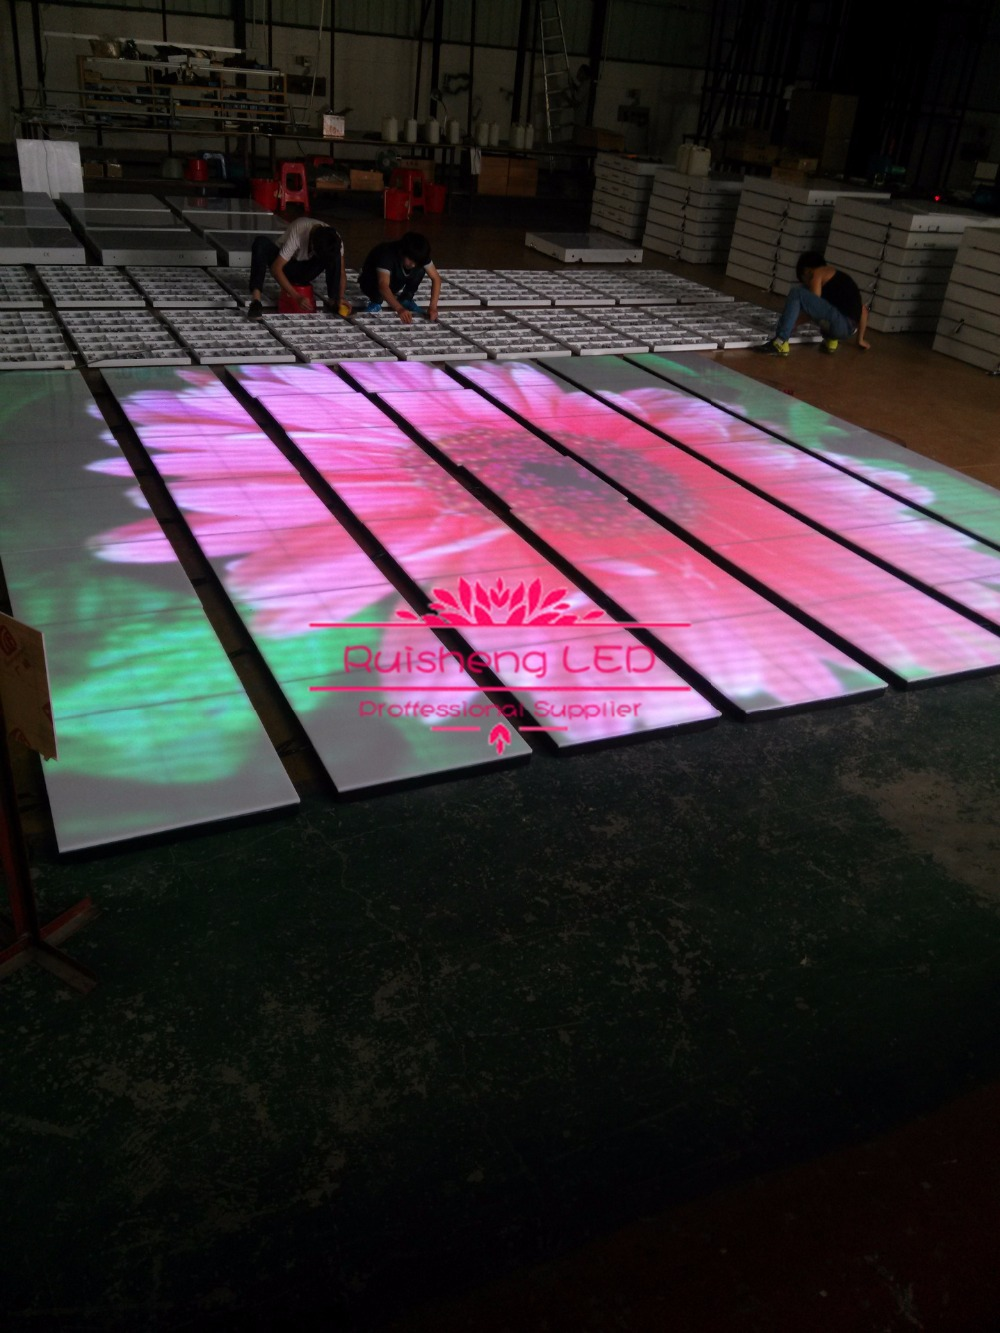 30 PCS/Lot (11.16 SQM) IP65 P10 Waterproof LED Video Dance Floor LED Floor Display Toughed Glass/Acrylic Cover 610*610*64(MM)/PC(China (Mainland))